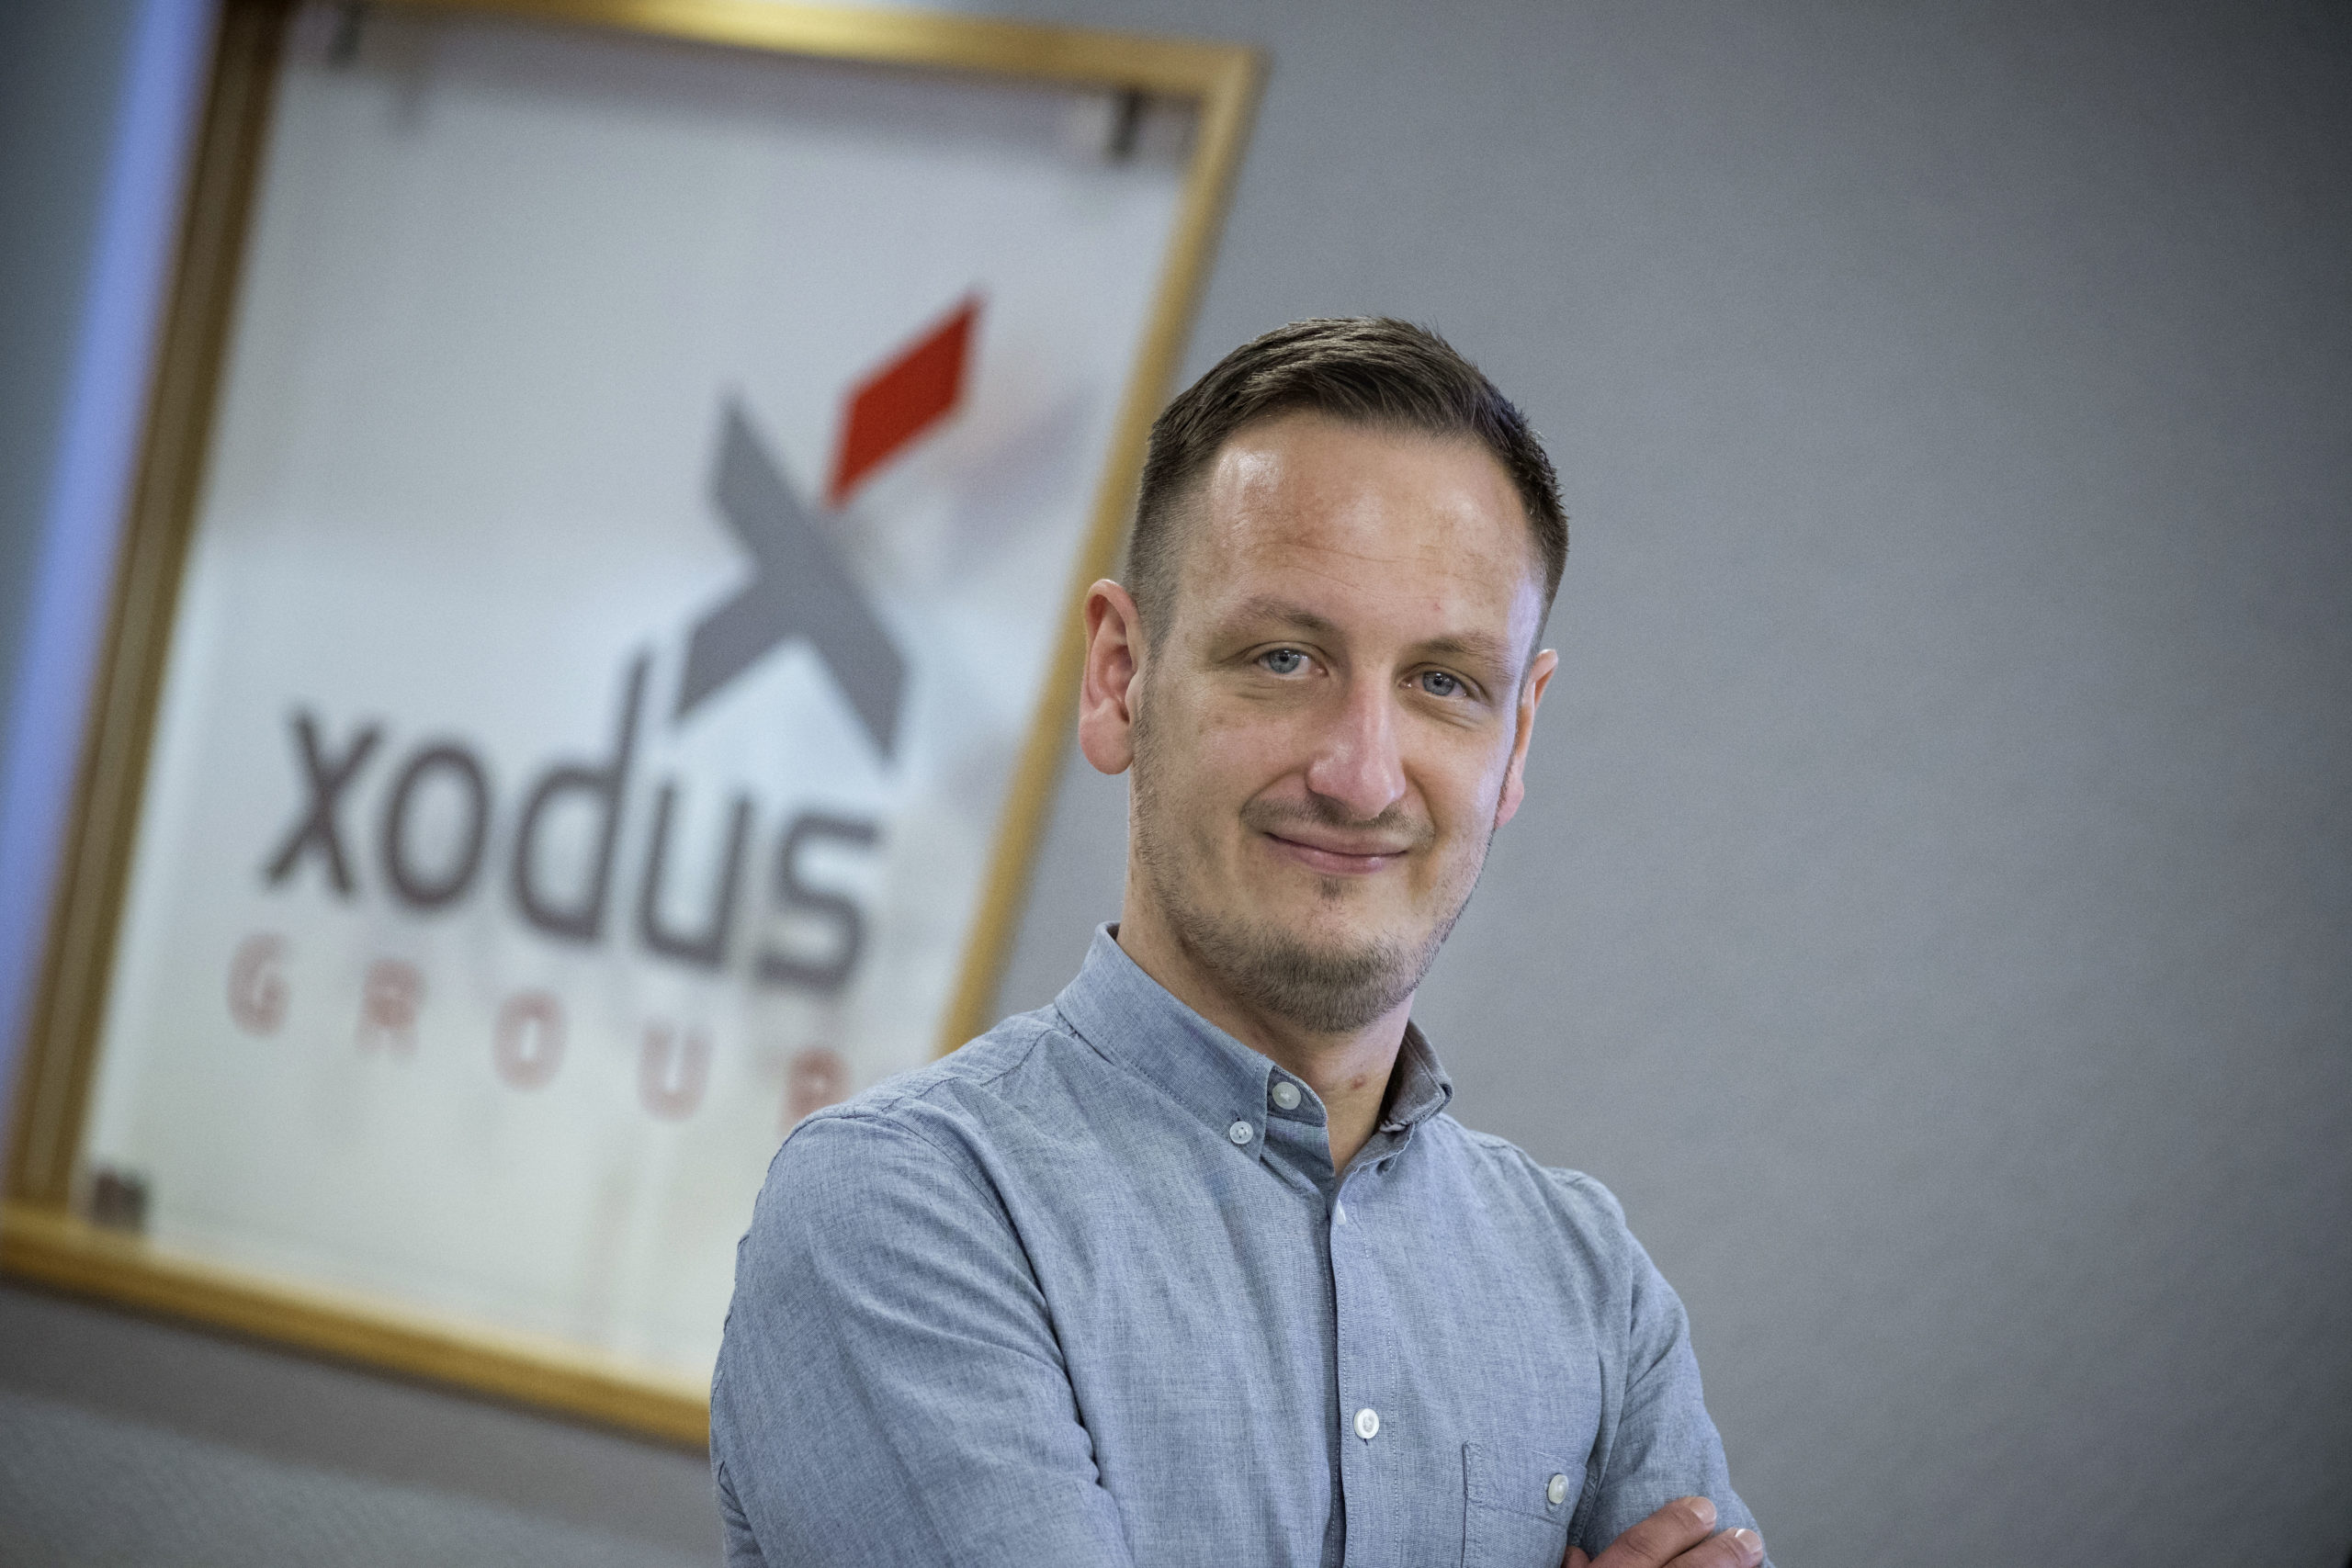 MEMBER NEWS: Xodus launches major floating offshore wind study